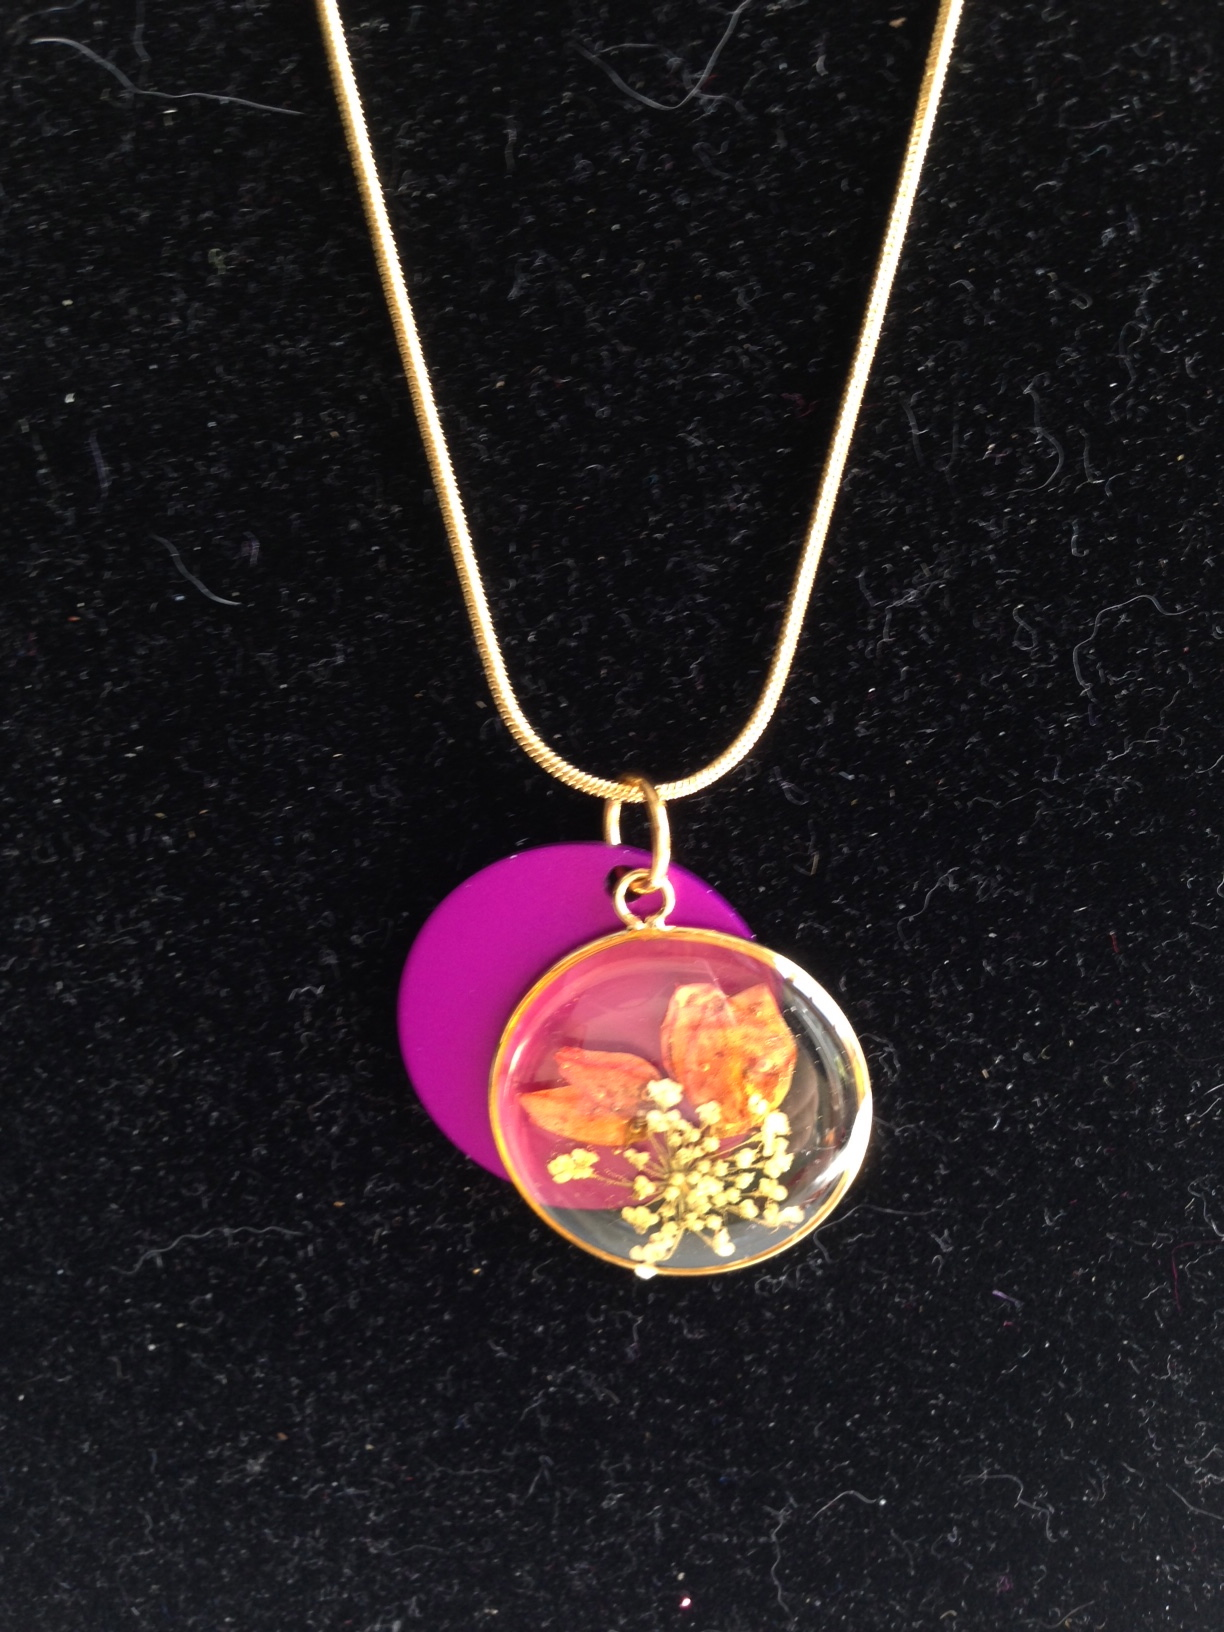 Pressed Flowers with Purple Energy Disk Pendants